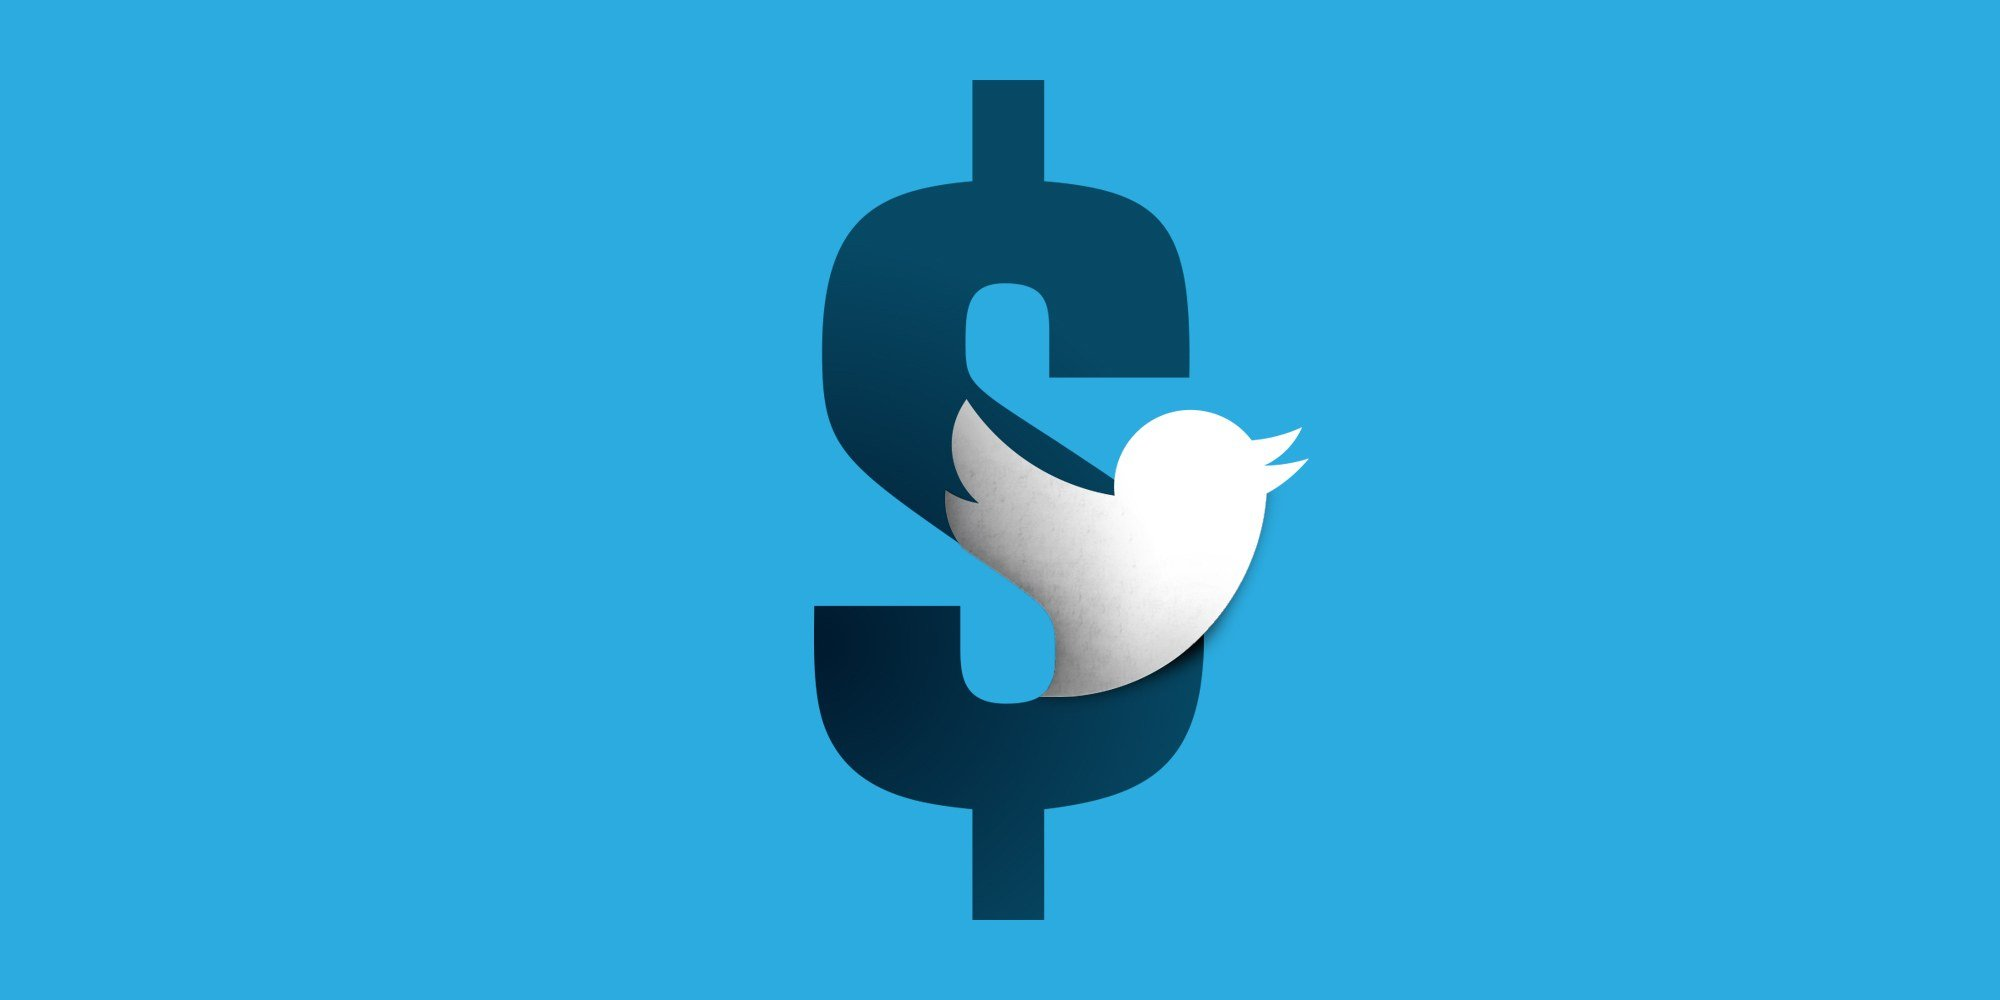 Twitter Is Earning A Profit, Despite Looming Problems